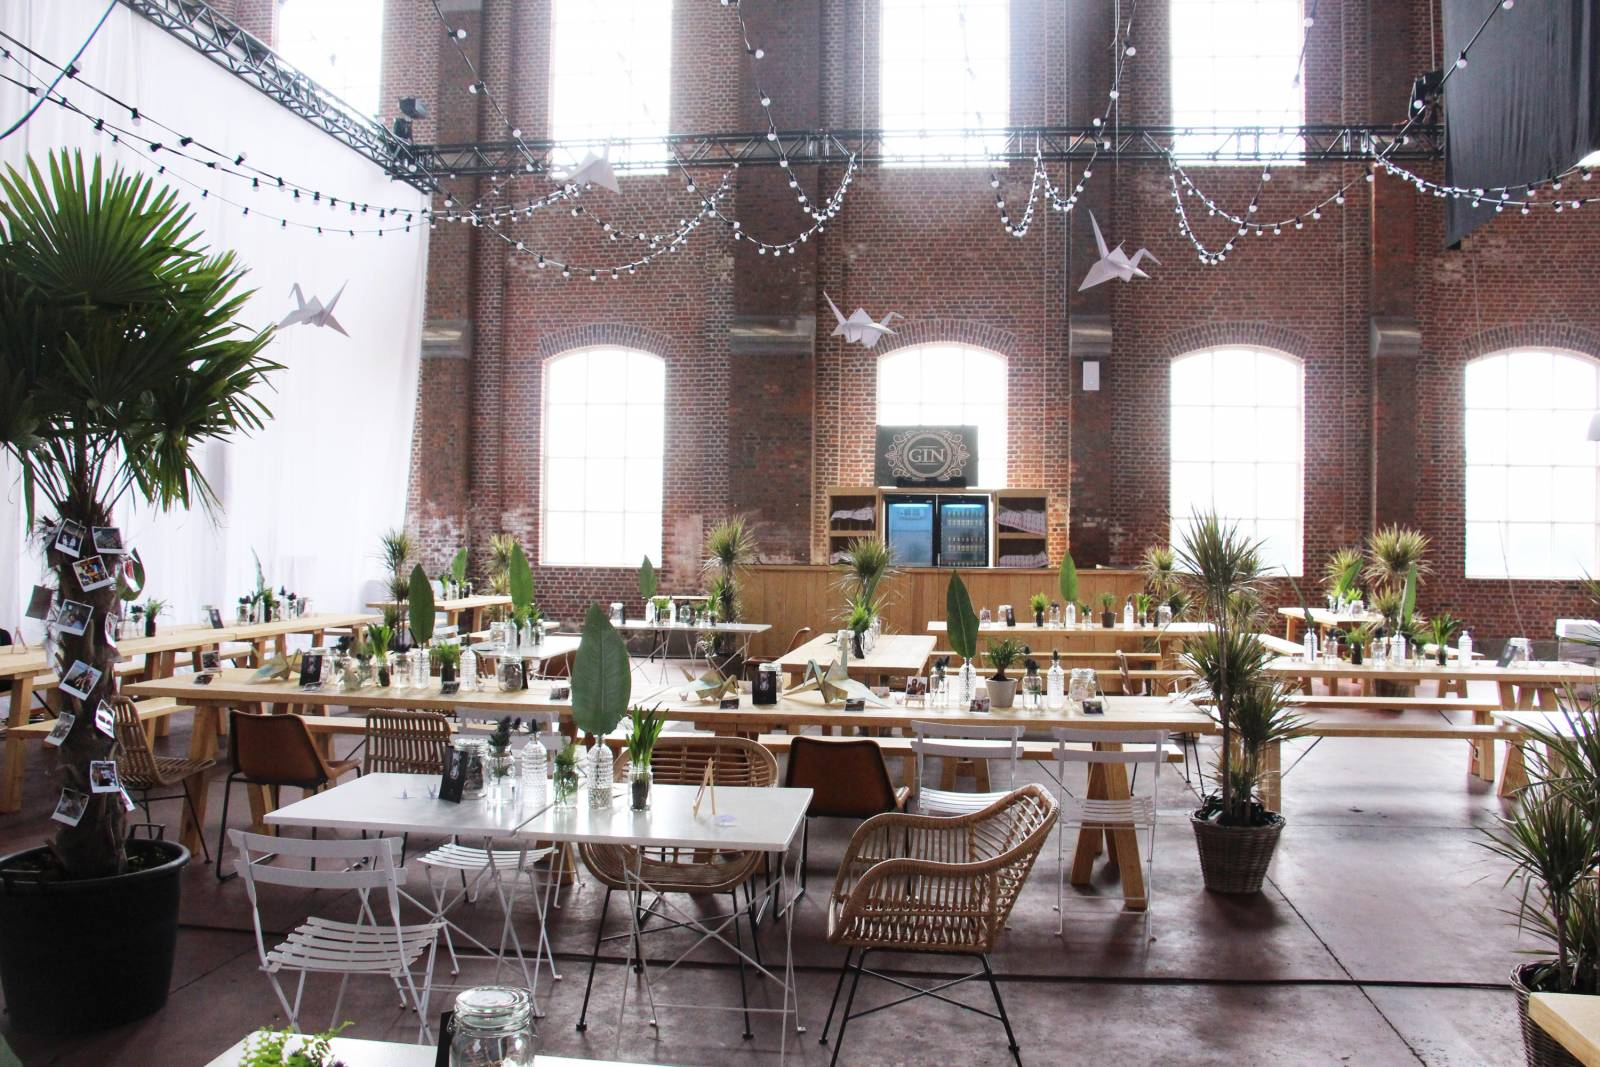 Hangar 43 - Feestzaal Oost-Vlaanderen - Industrieel - House of Weddings - 45